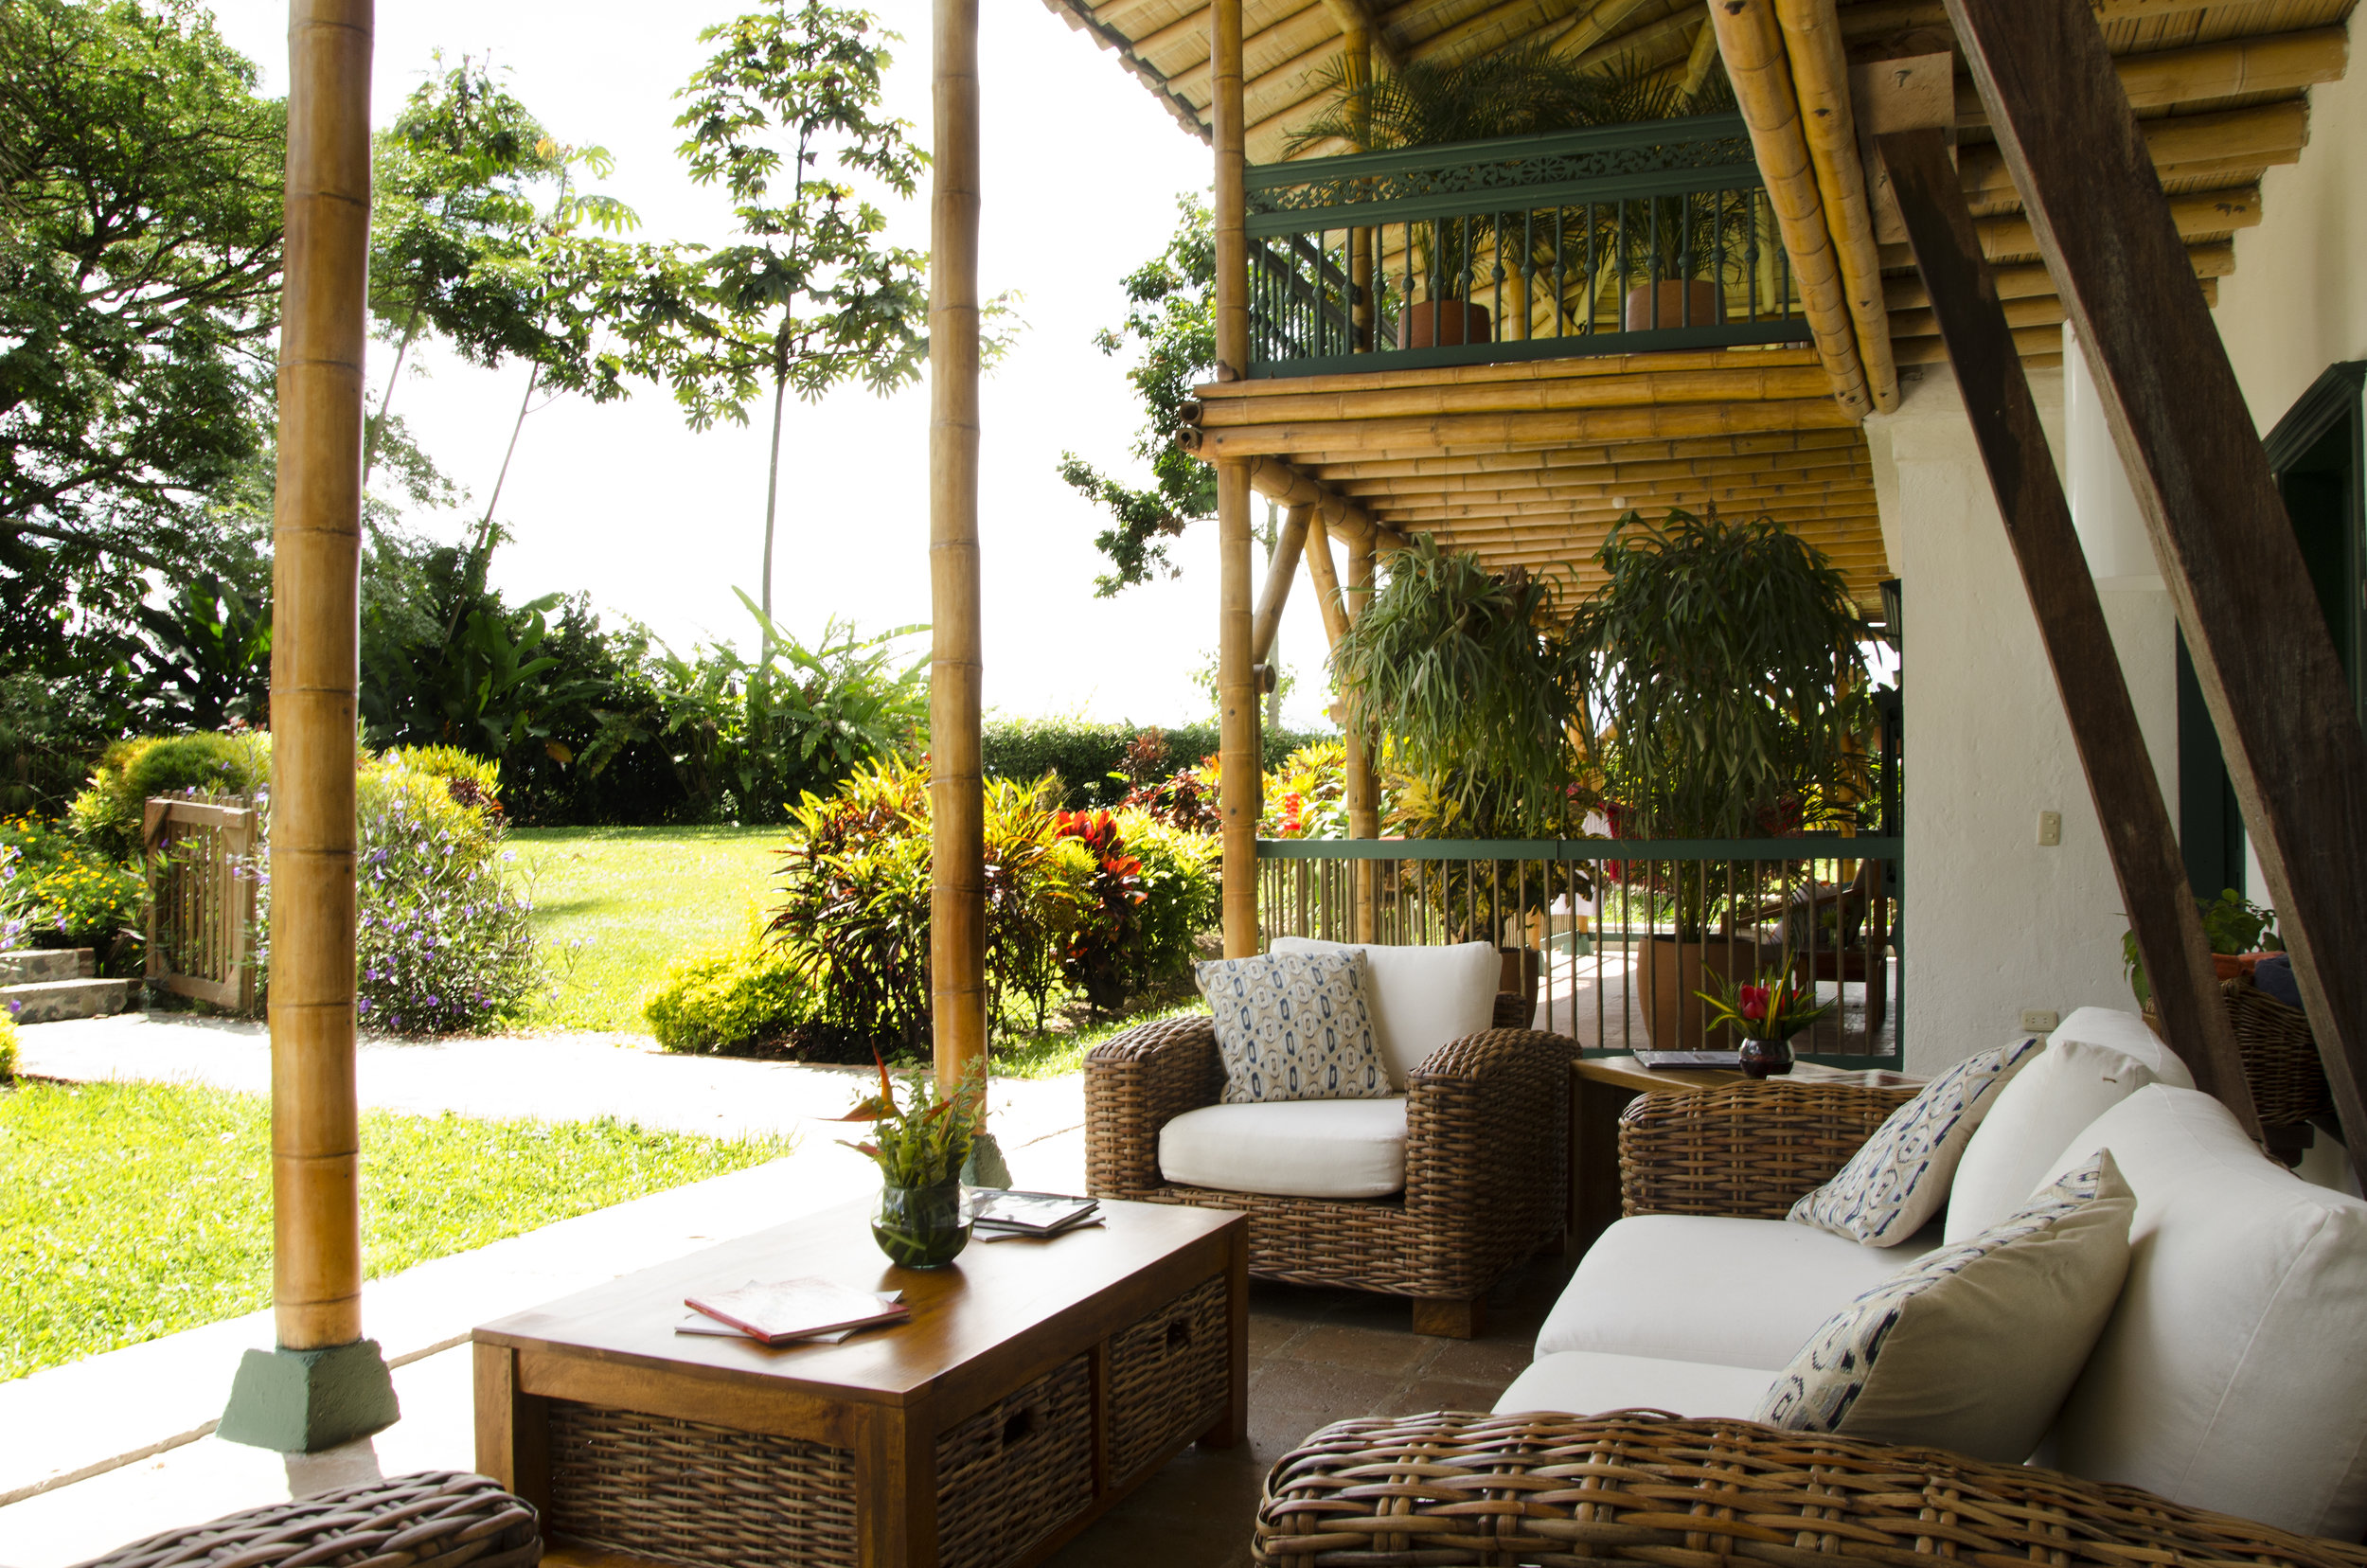 Spacious verandas & gardens surround every room at Hacienda Bambusa, which is built circling a central enclosed courtyard.